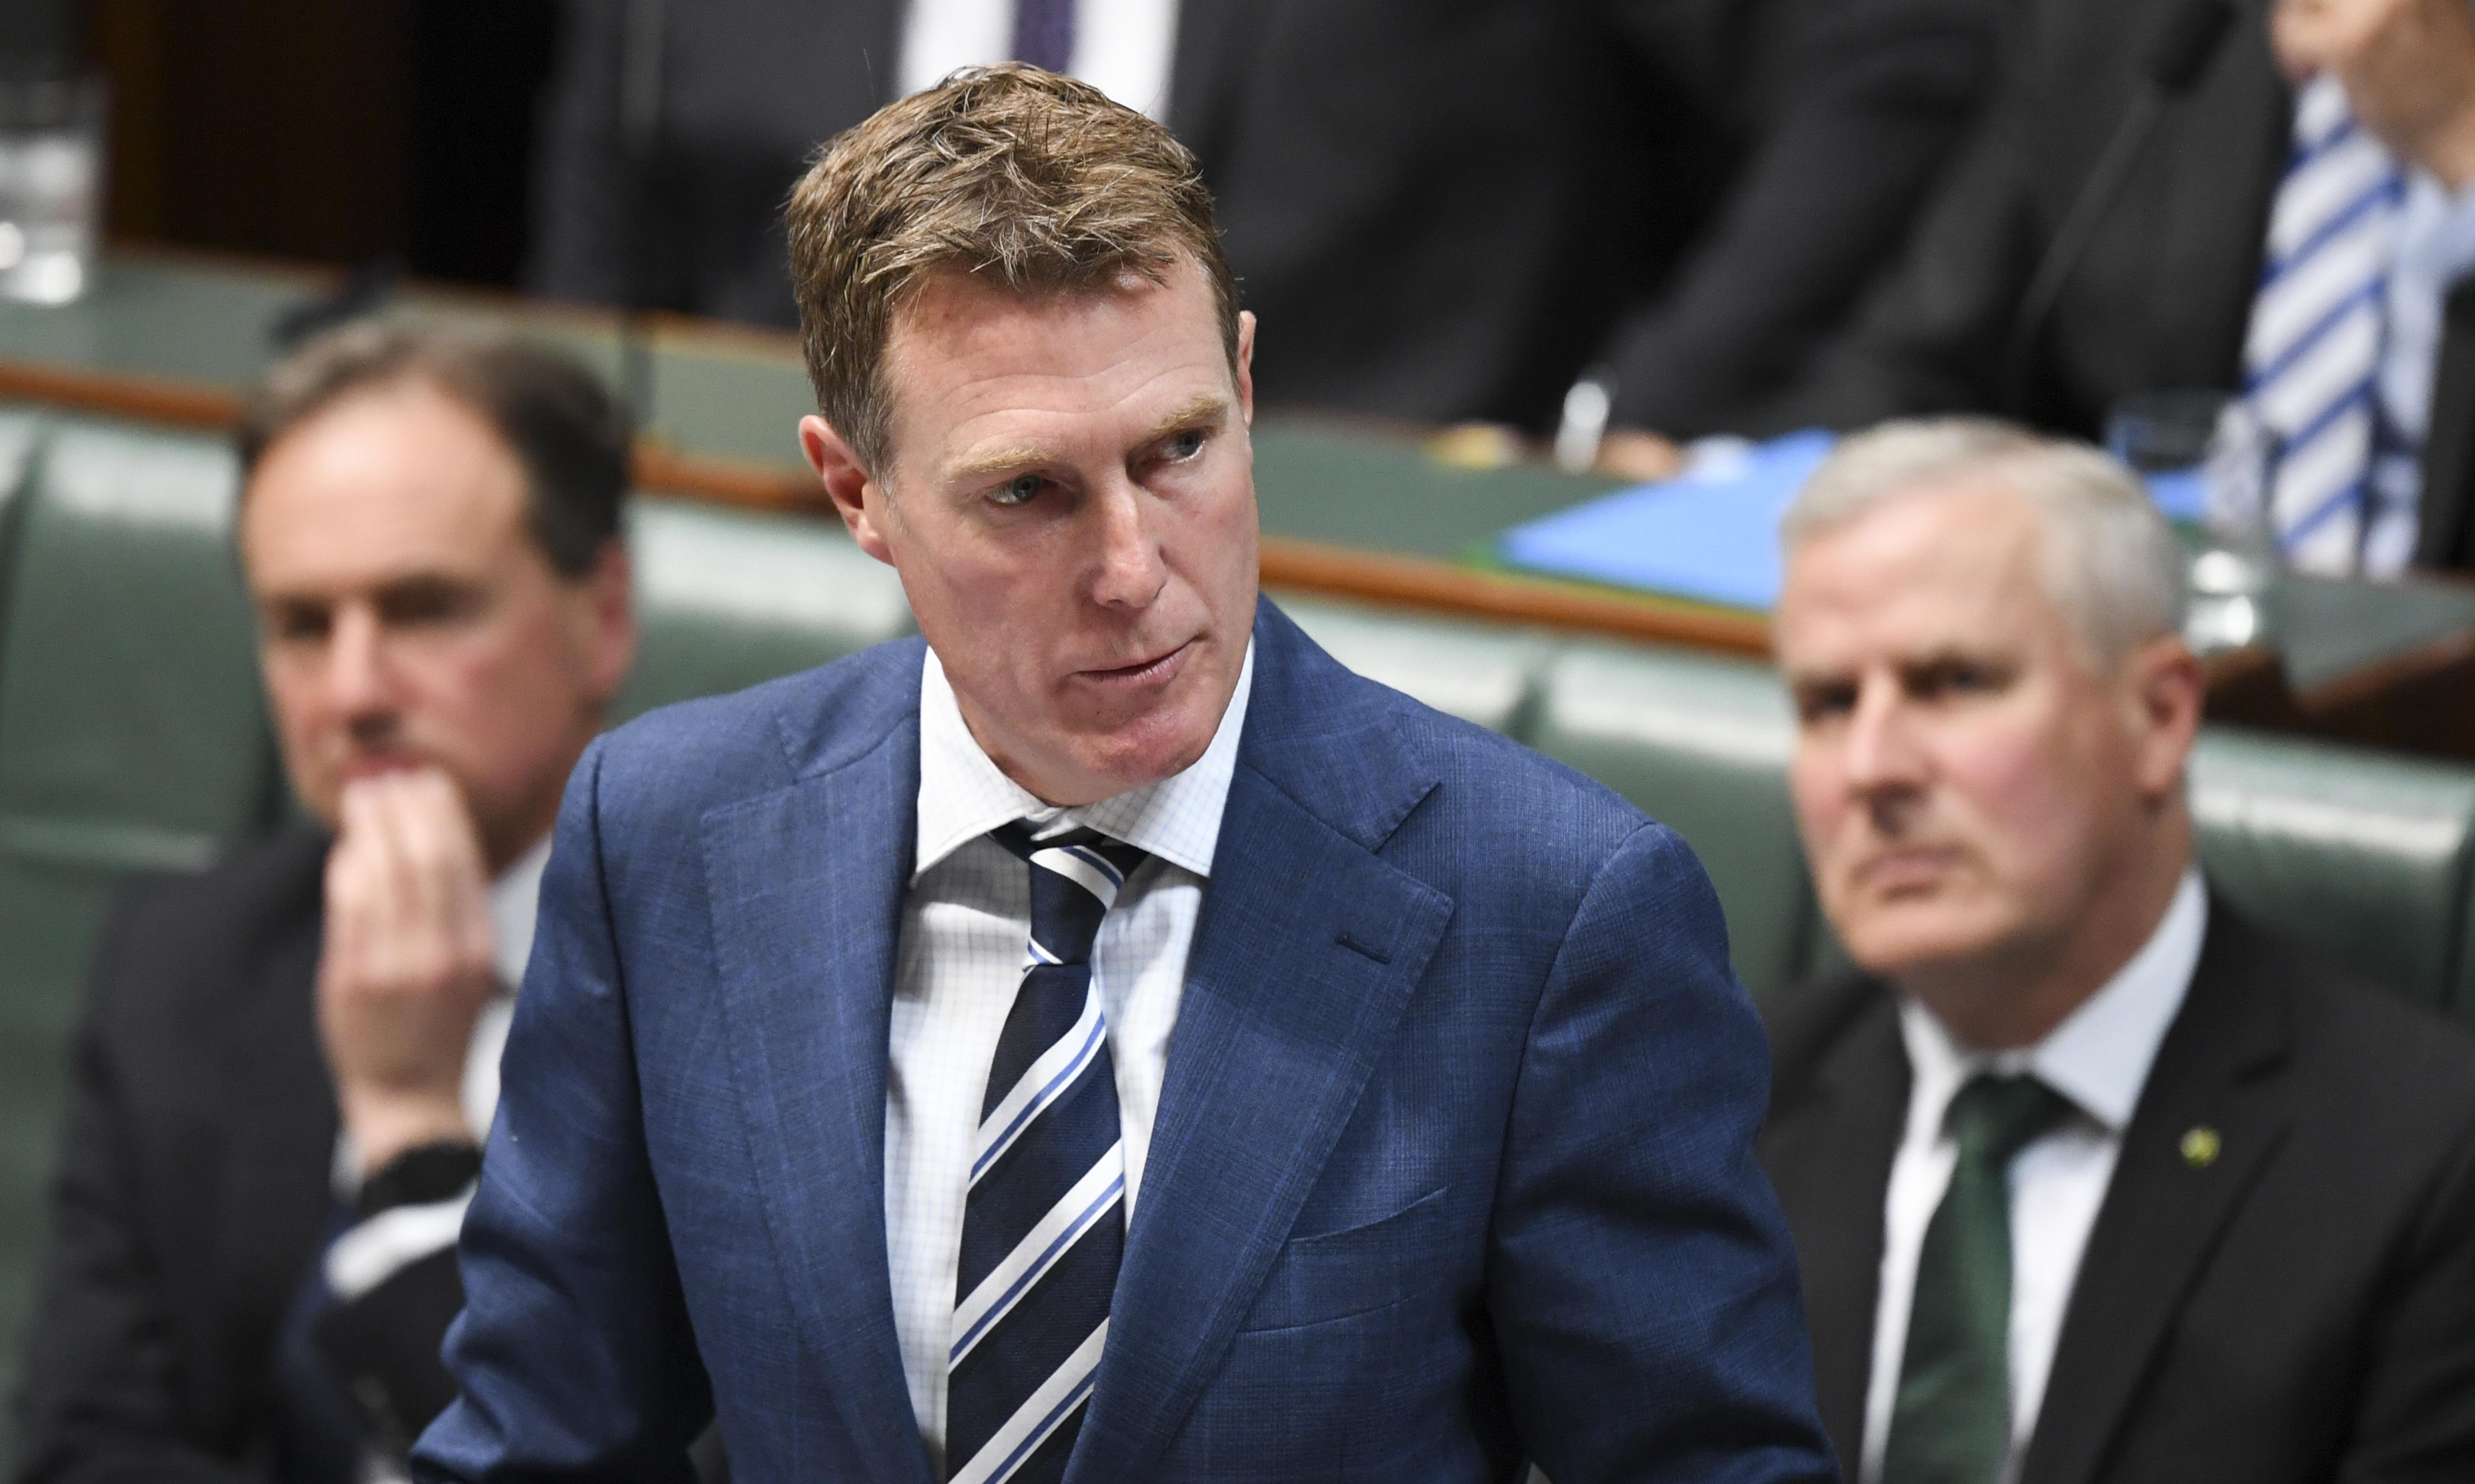 Wage theft: Coalition says tough new penalties won't apply for 'genuine mistakes'